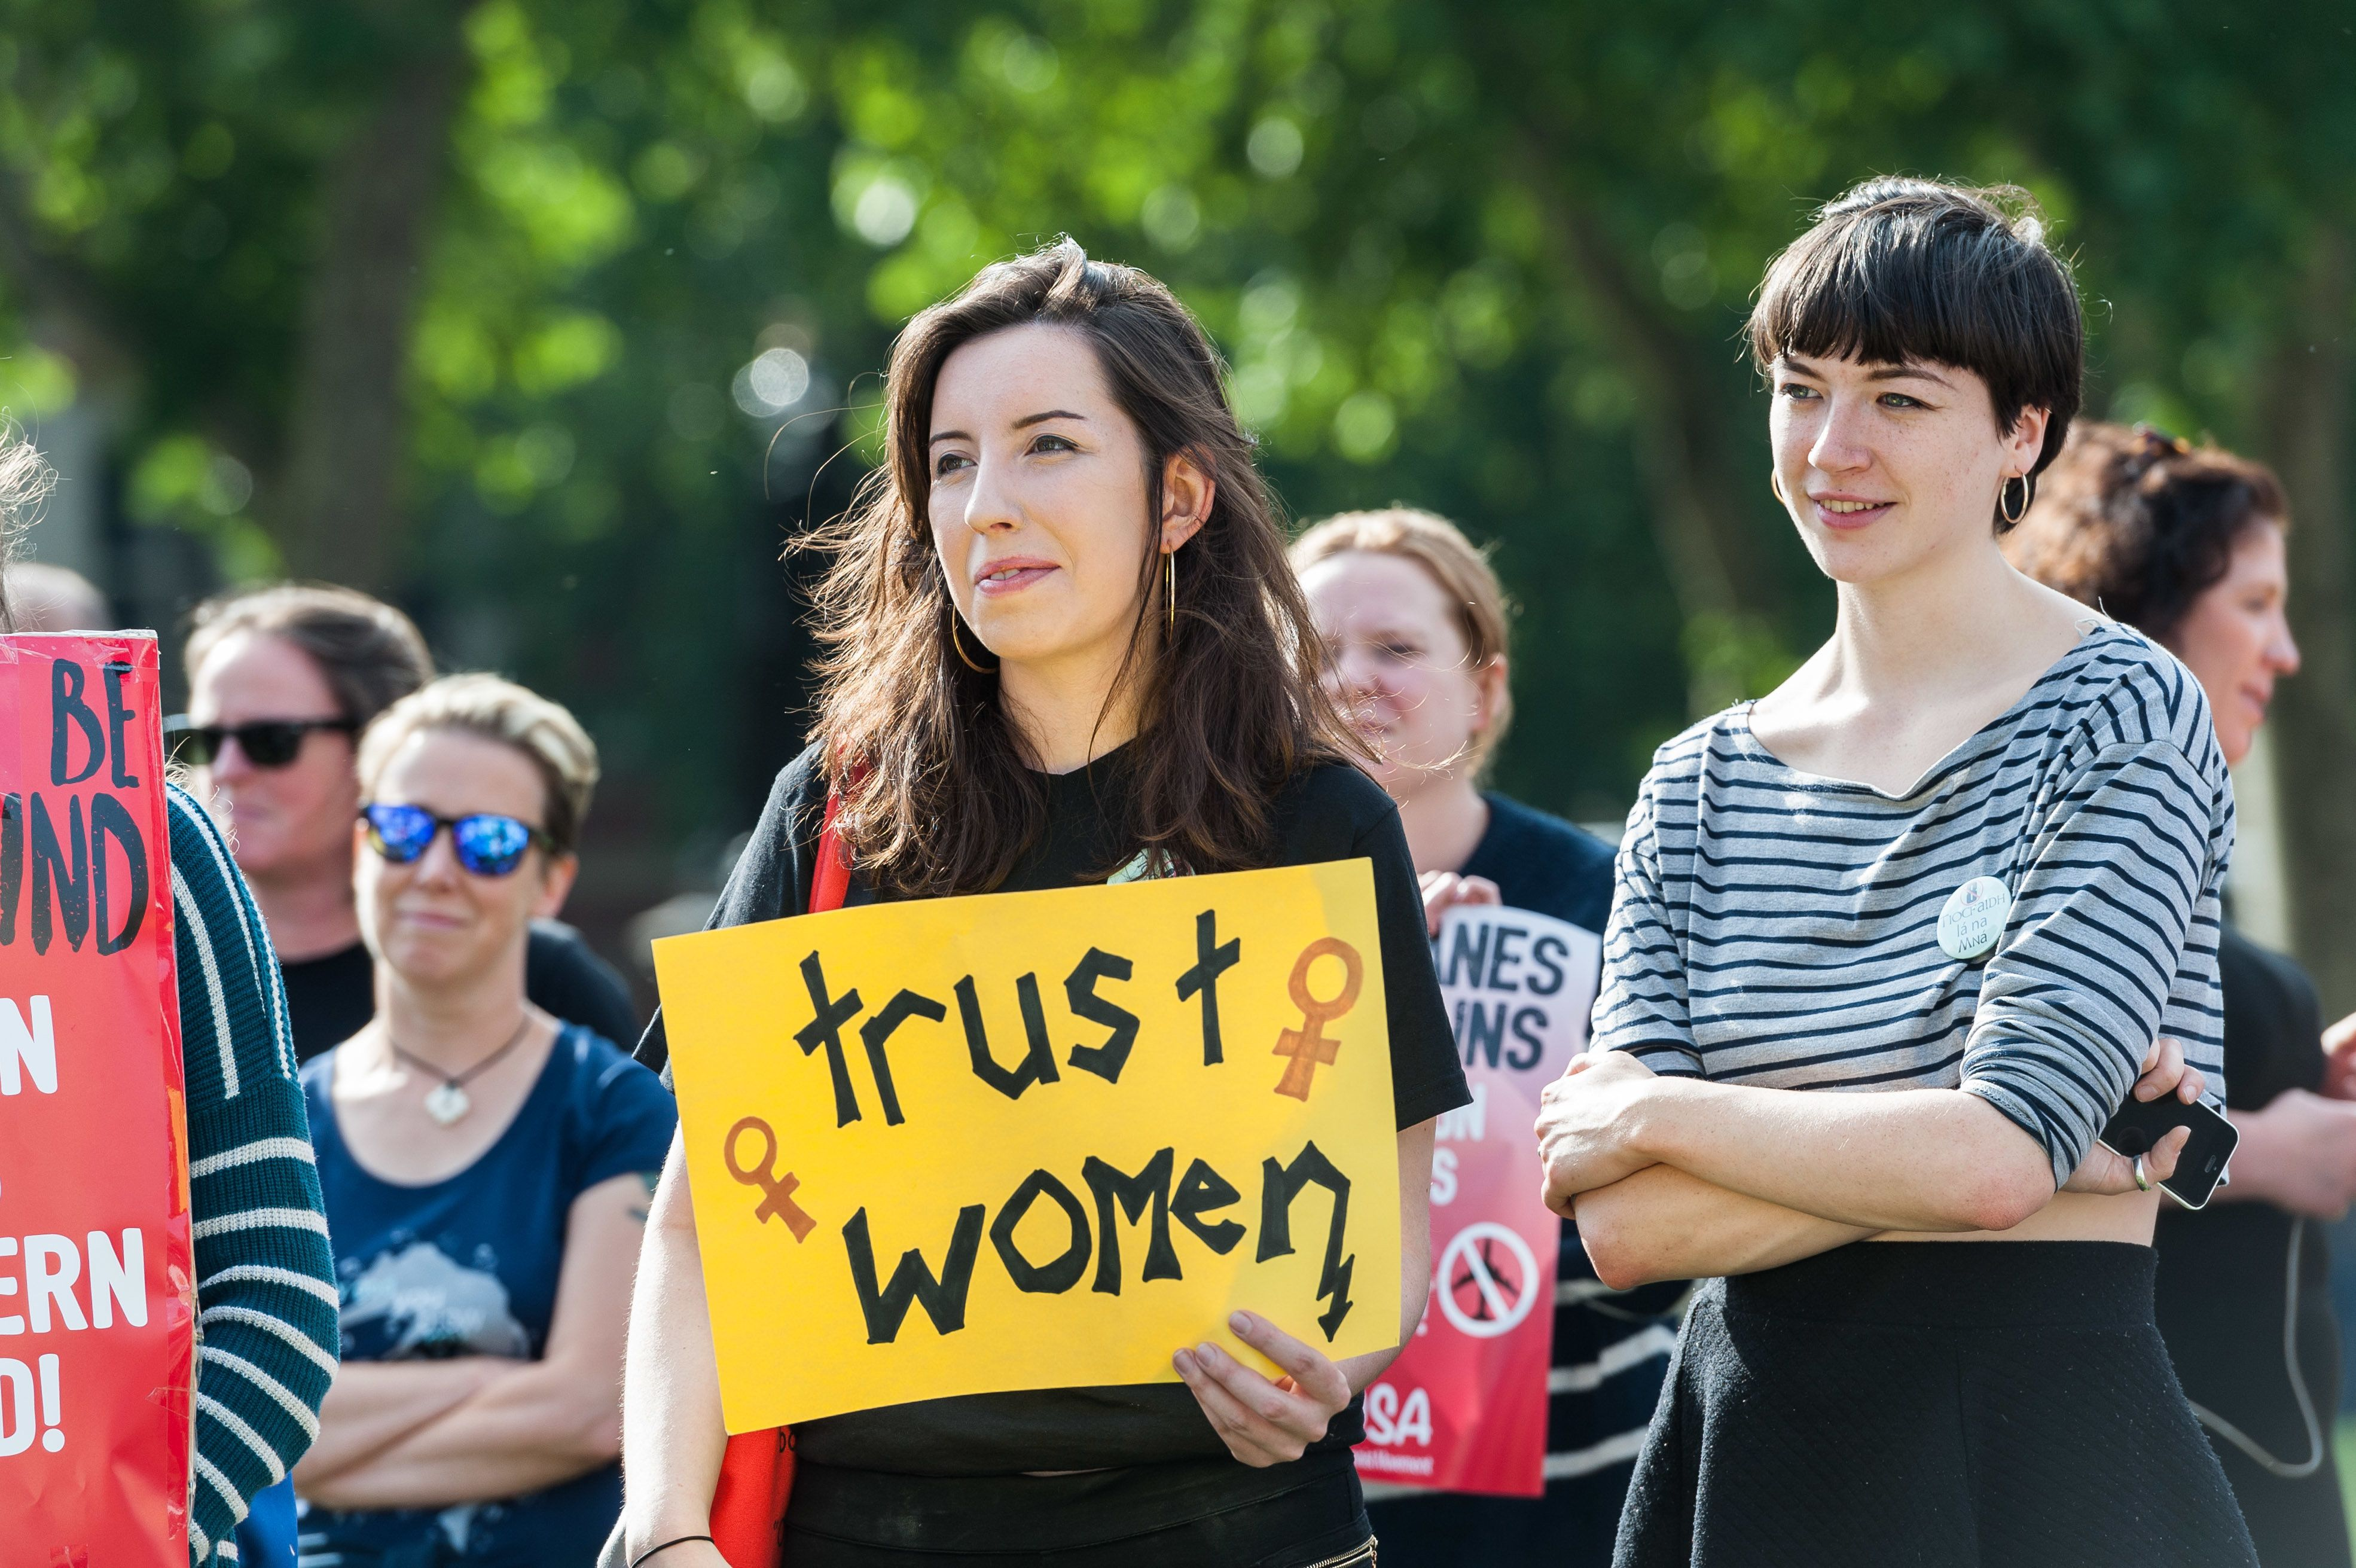 Pro-choice campaigners stage a demonstration on June 5. 2018, in Parliament Square in London demanding...